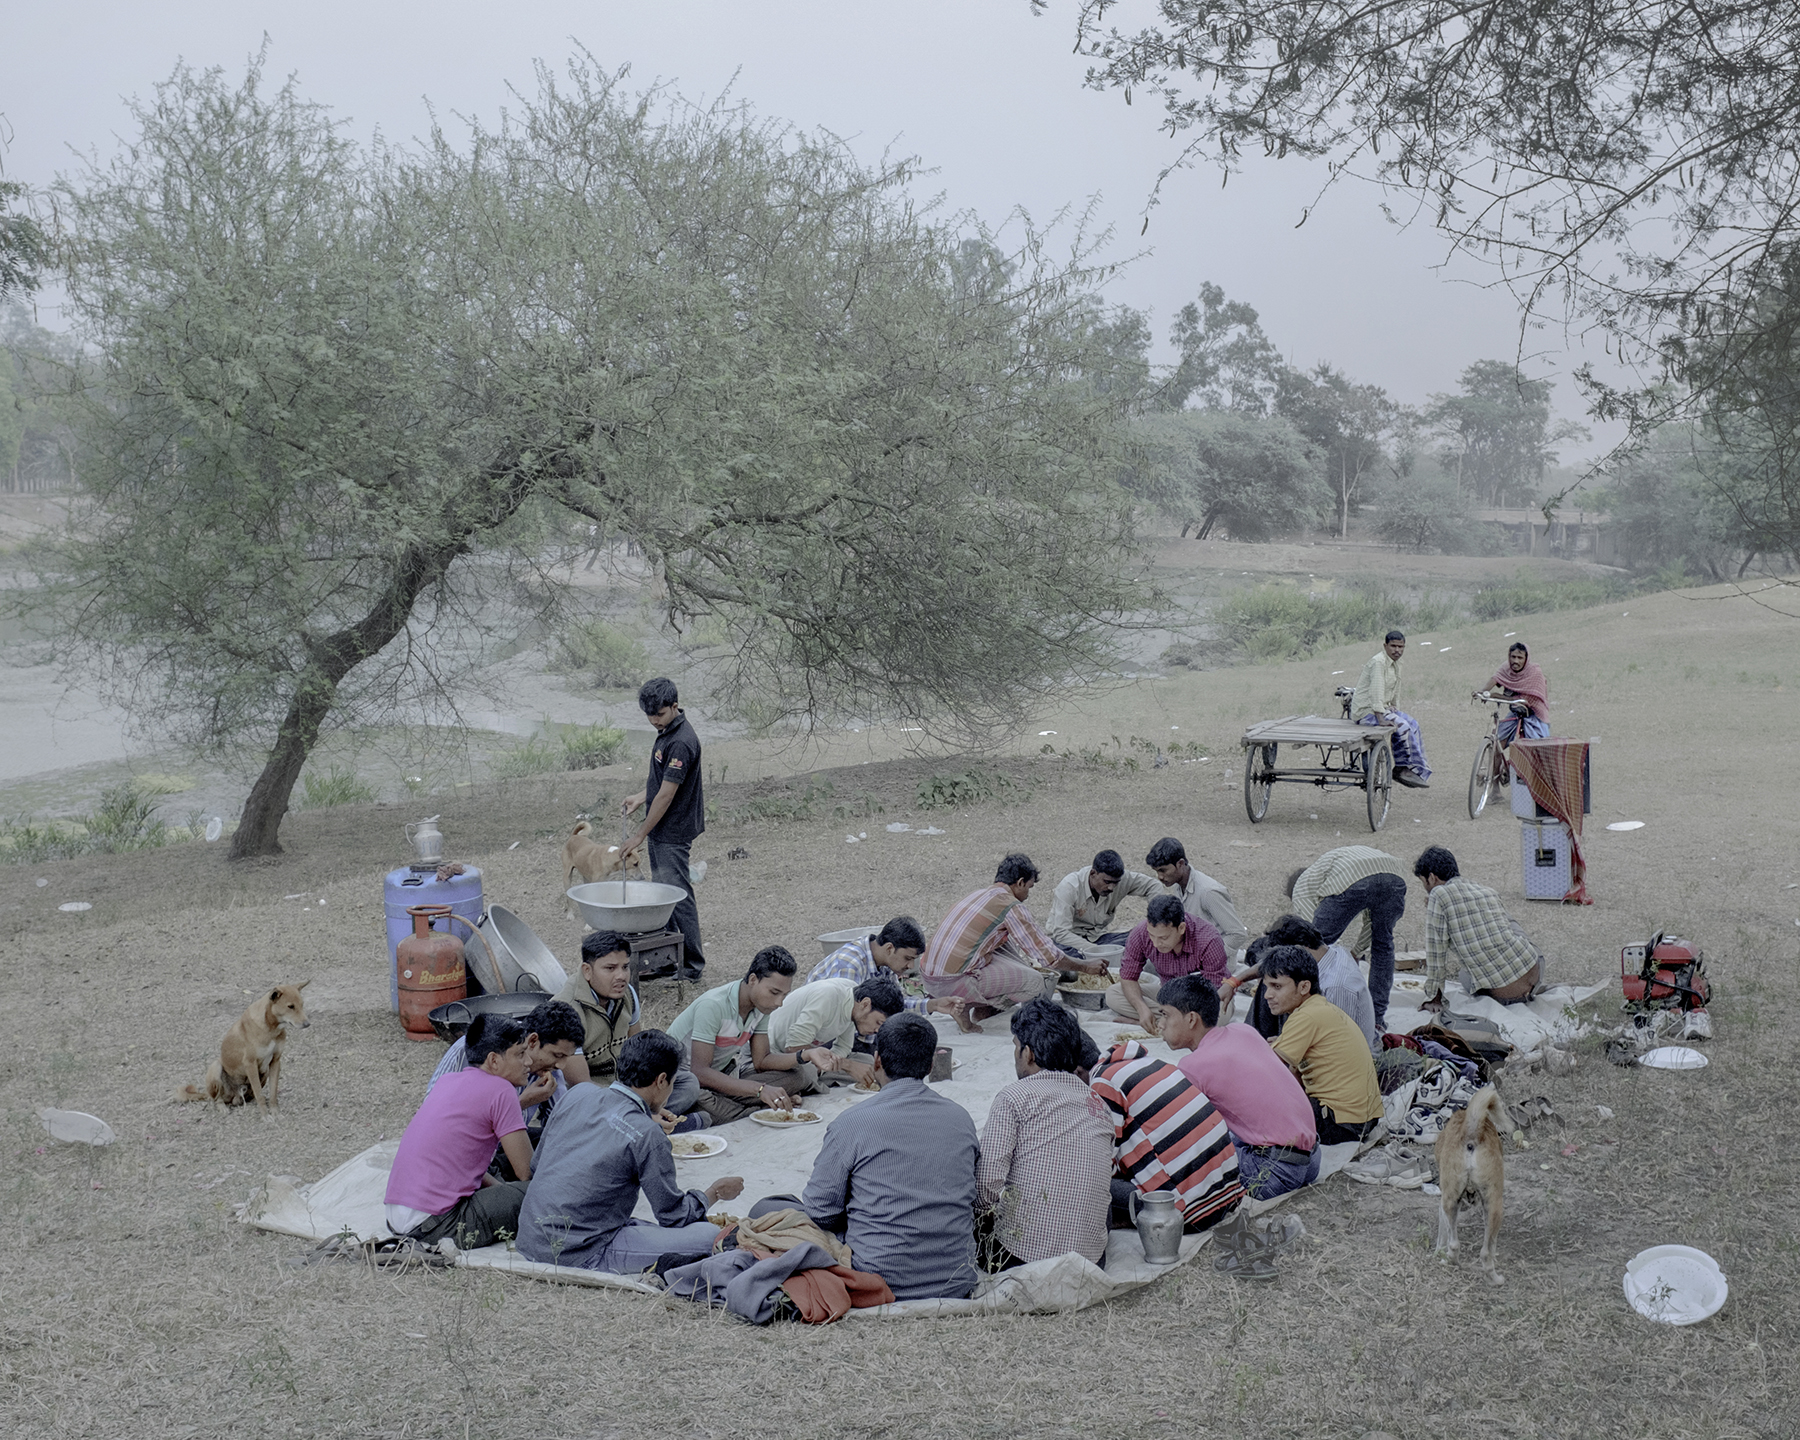 India, Rajasthan, Badoo, January 2015. Picnicking is far from a simple affair in eastern India. In a land where the fleeting months of December to February offer the only time to 'enjoy' the otherwise unbearable tropical sun, picnicking is a winter pastime that's taken very, very seriously.